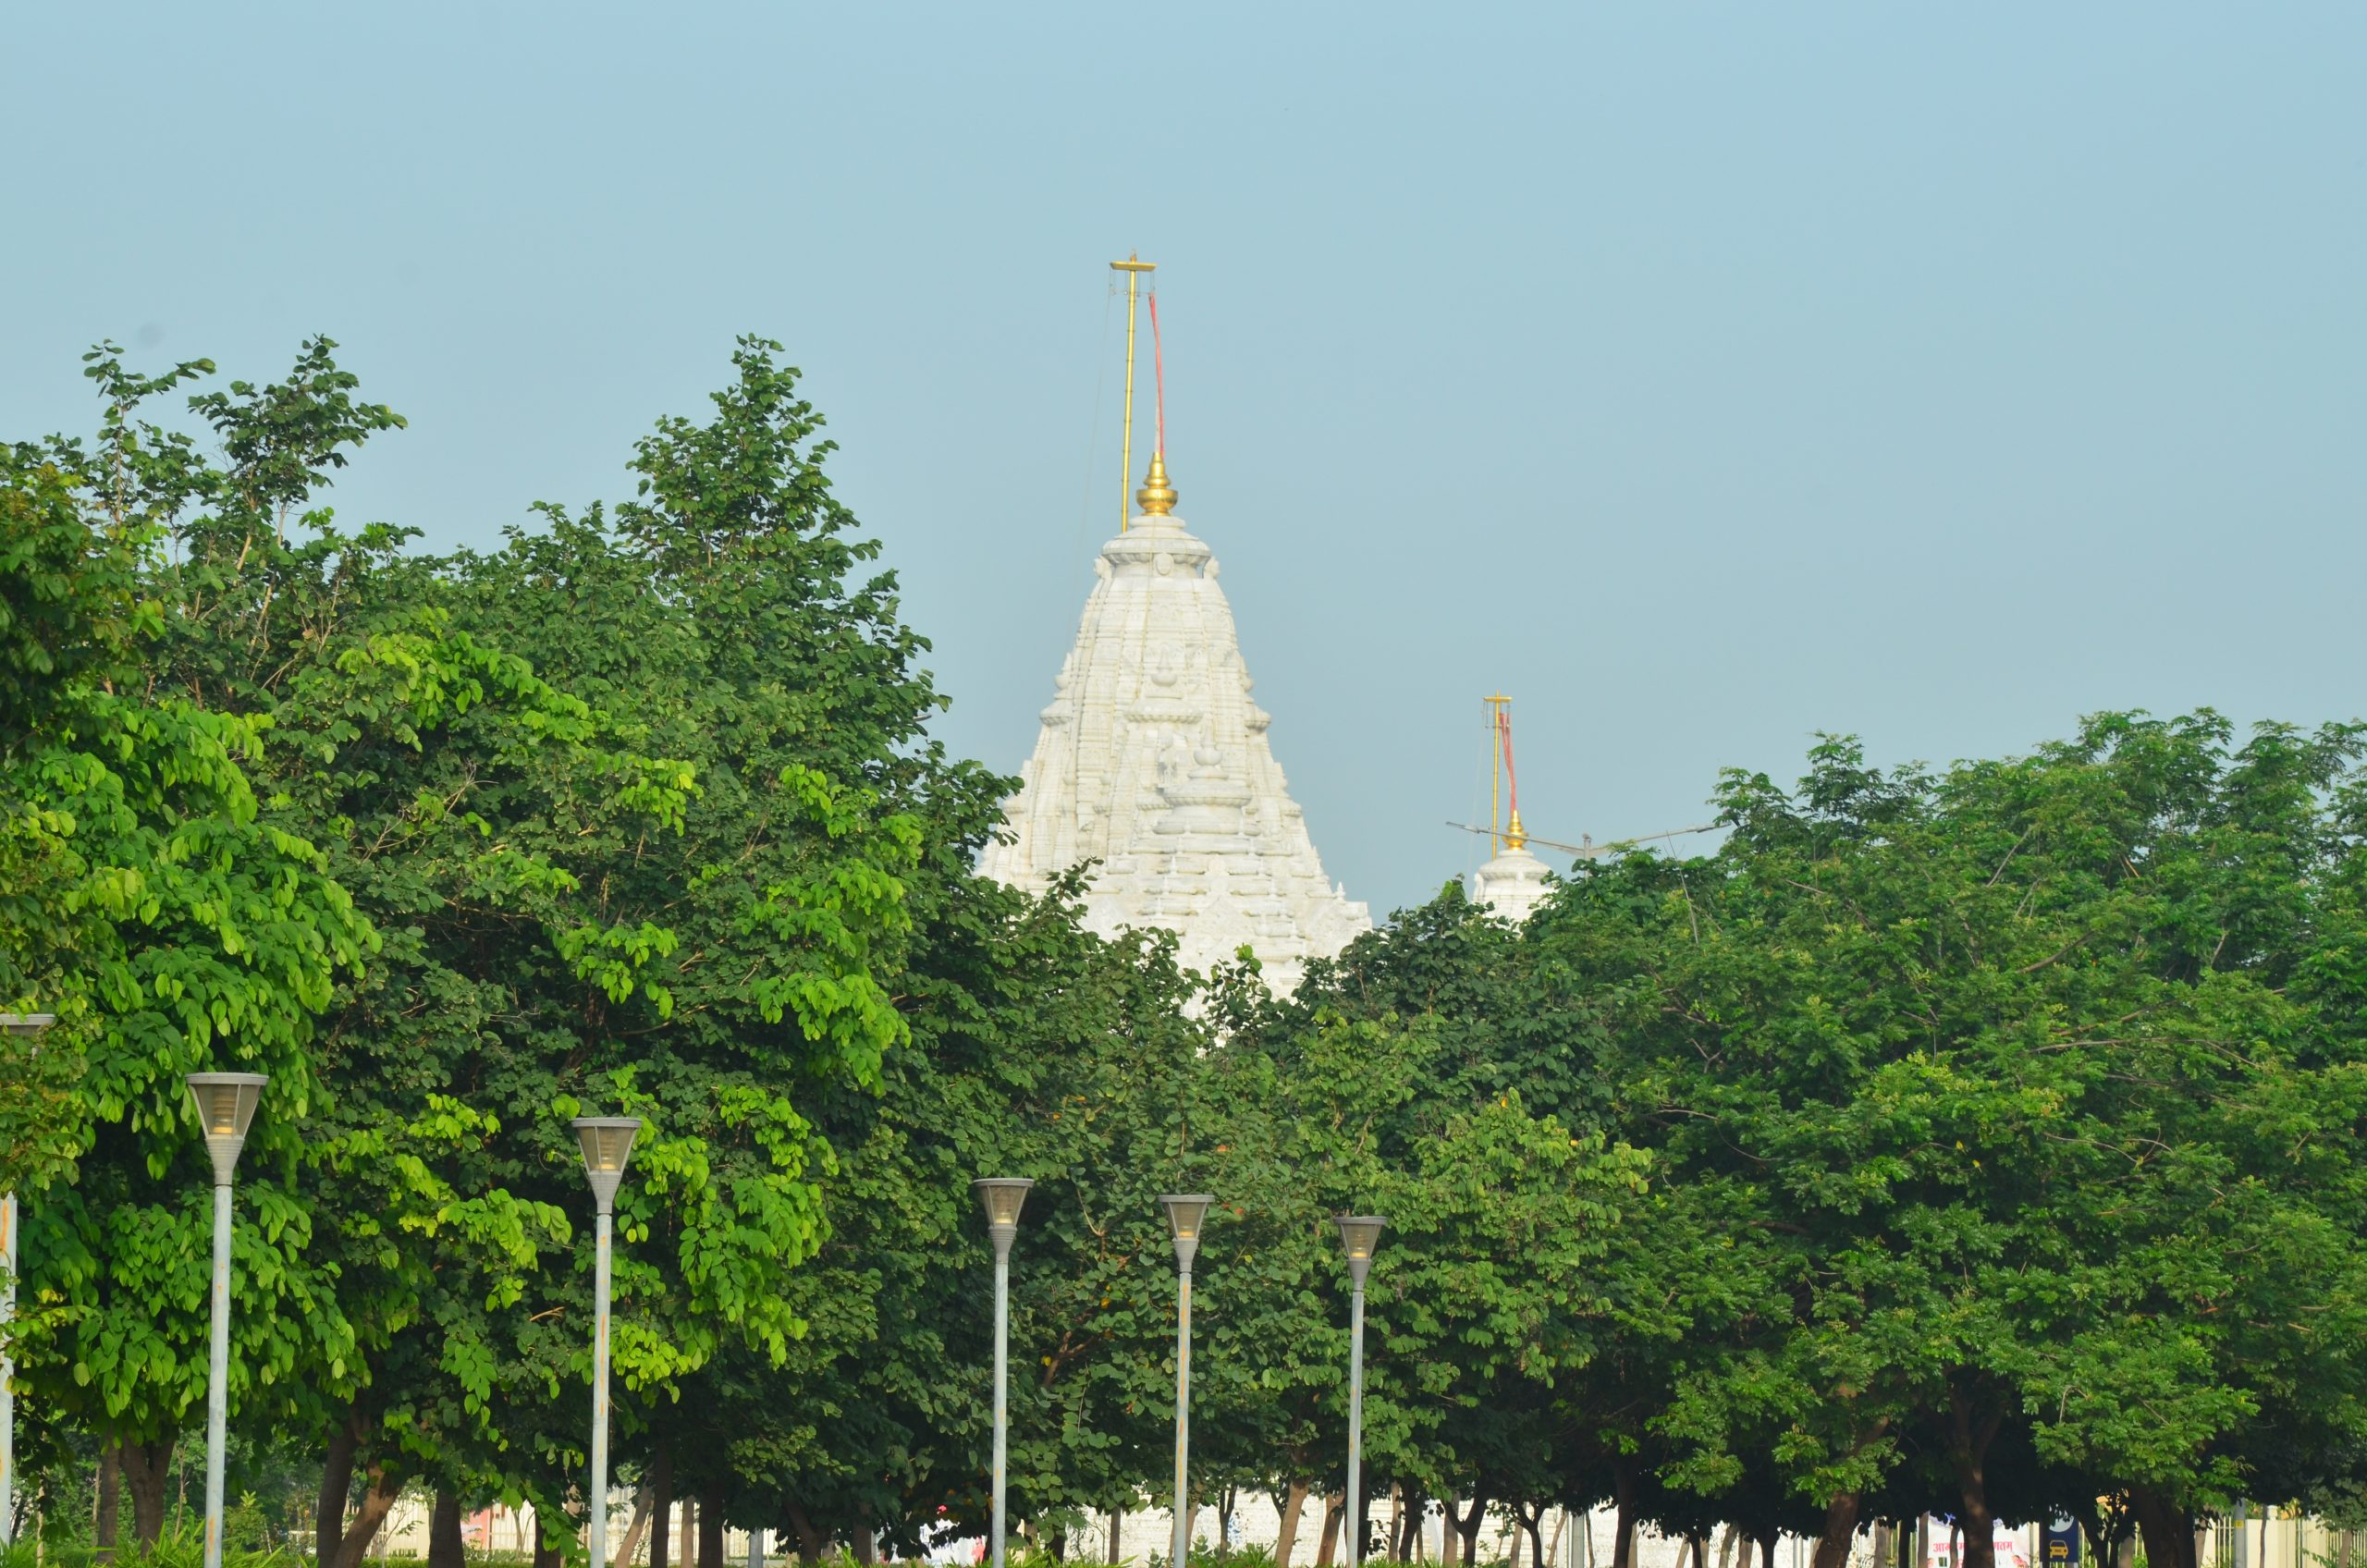 temple behind trees